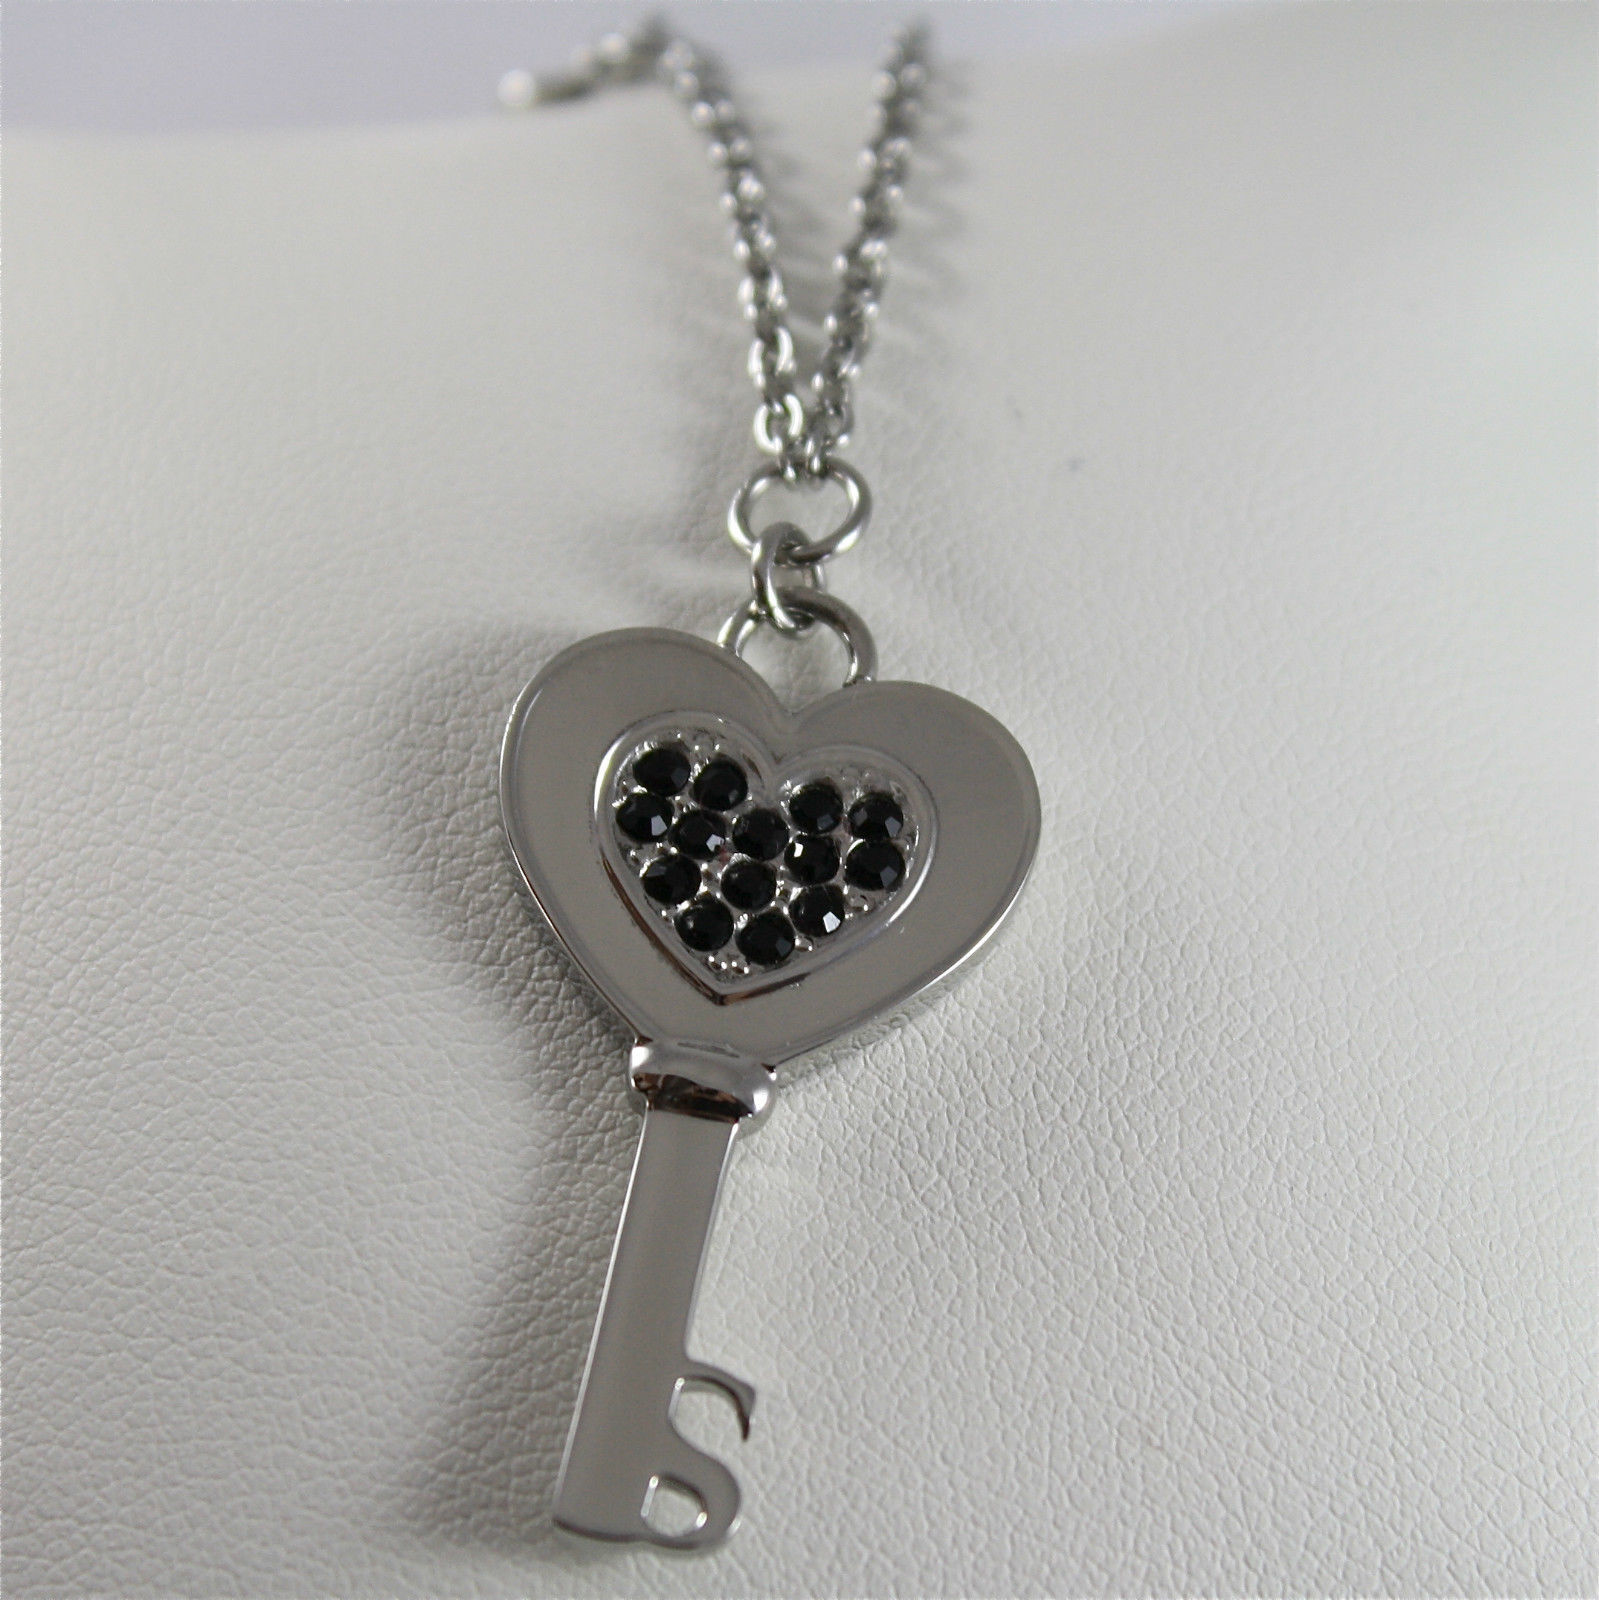 S'AGAPO' NECKLACE, 316L STEEL, HEART KEY SHAPE, BLACK FACETED CRYSTALS.